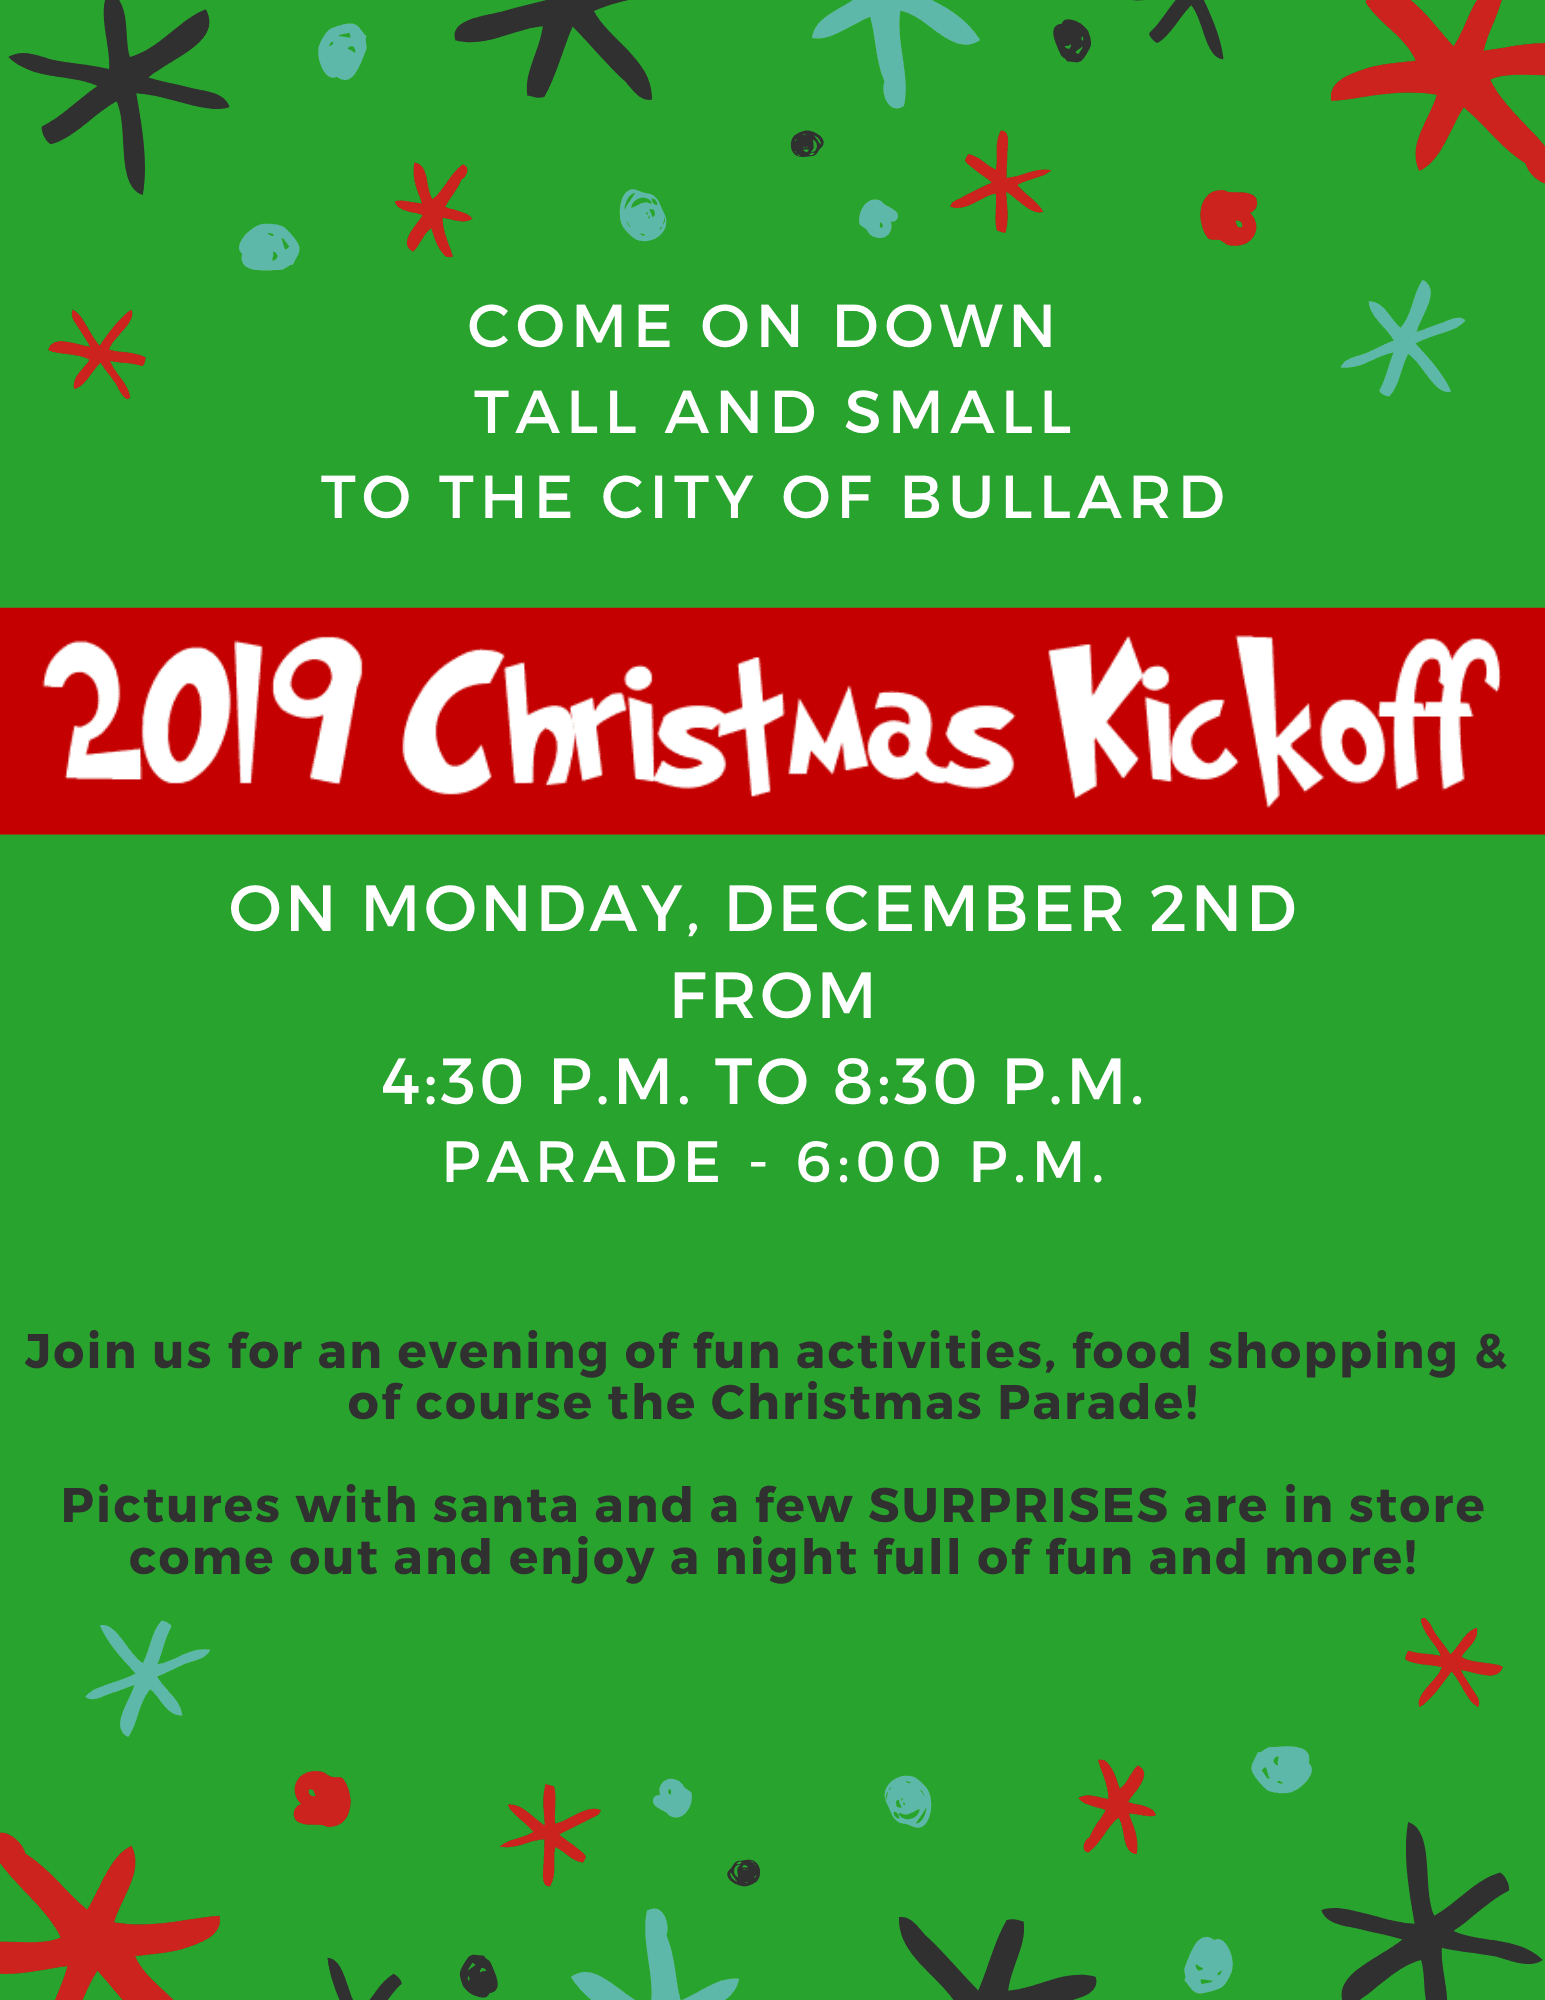 Christmas Kickoff 2019 Flyer